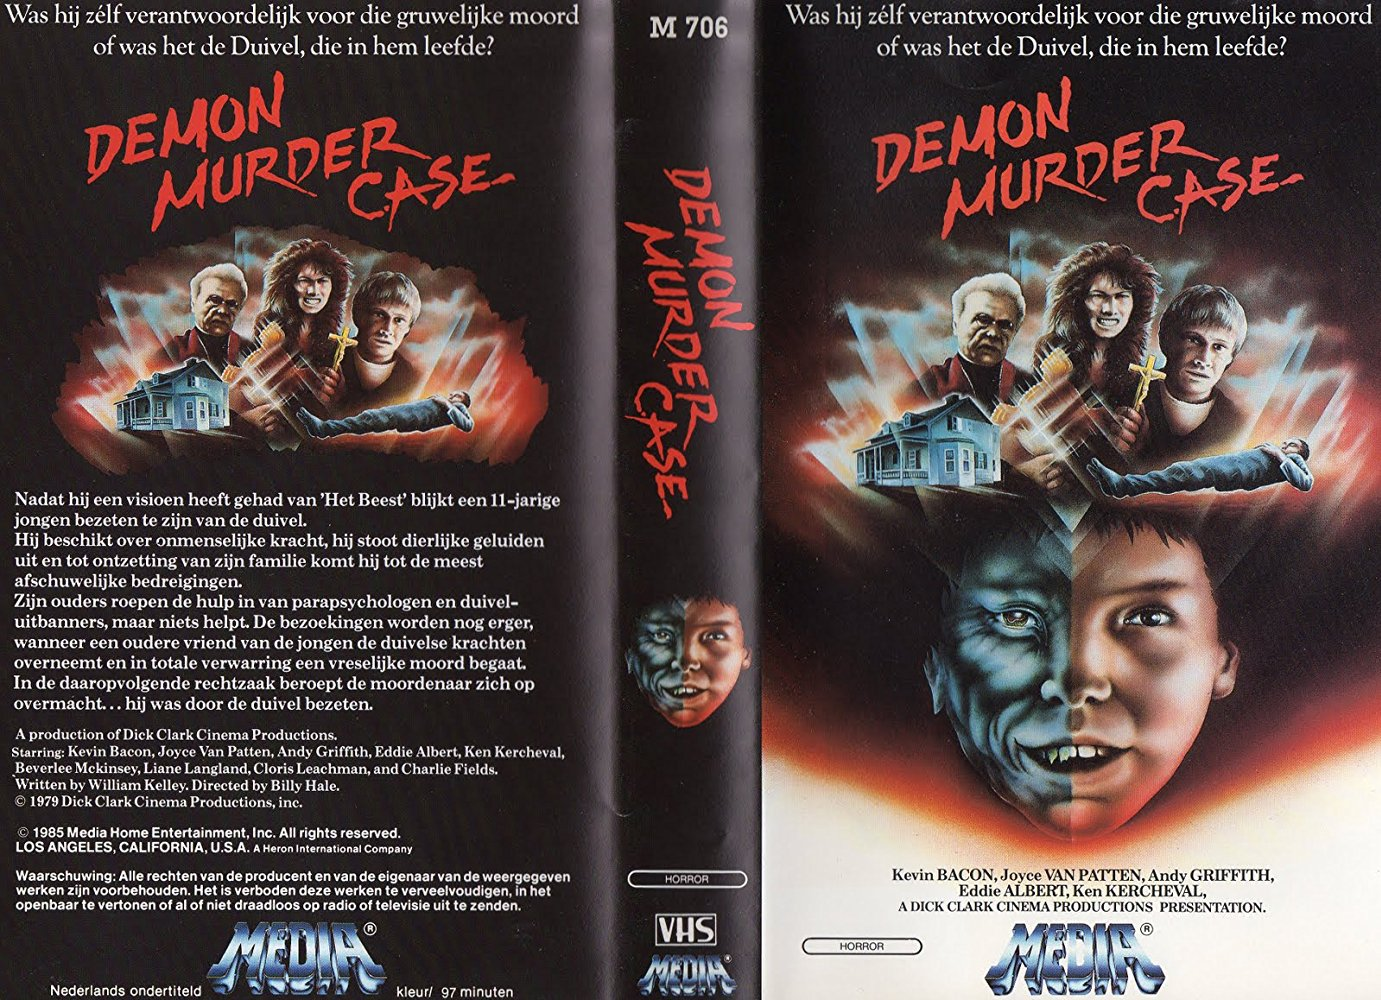 The Demon Murder Case (TV Movie)